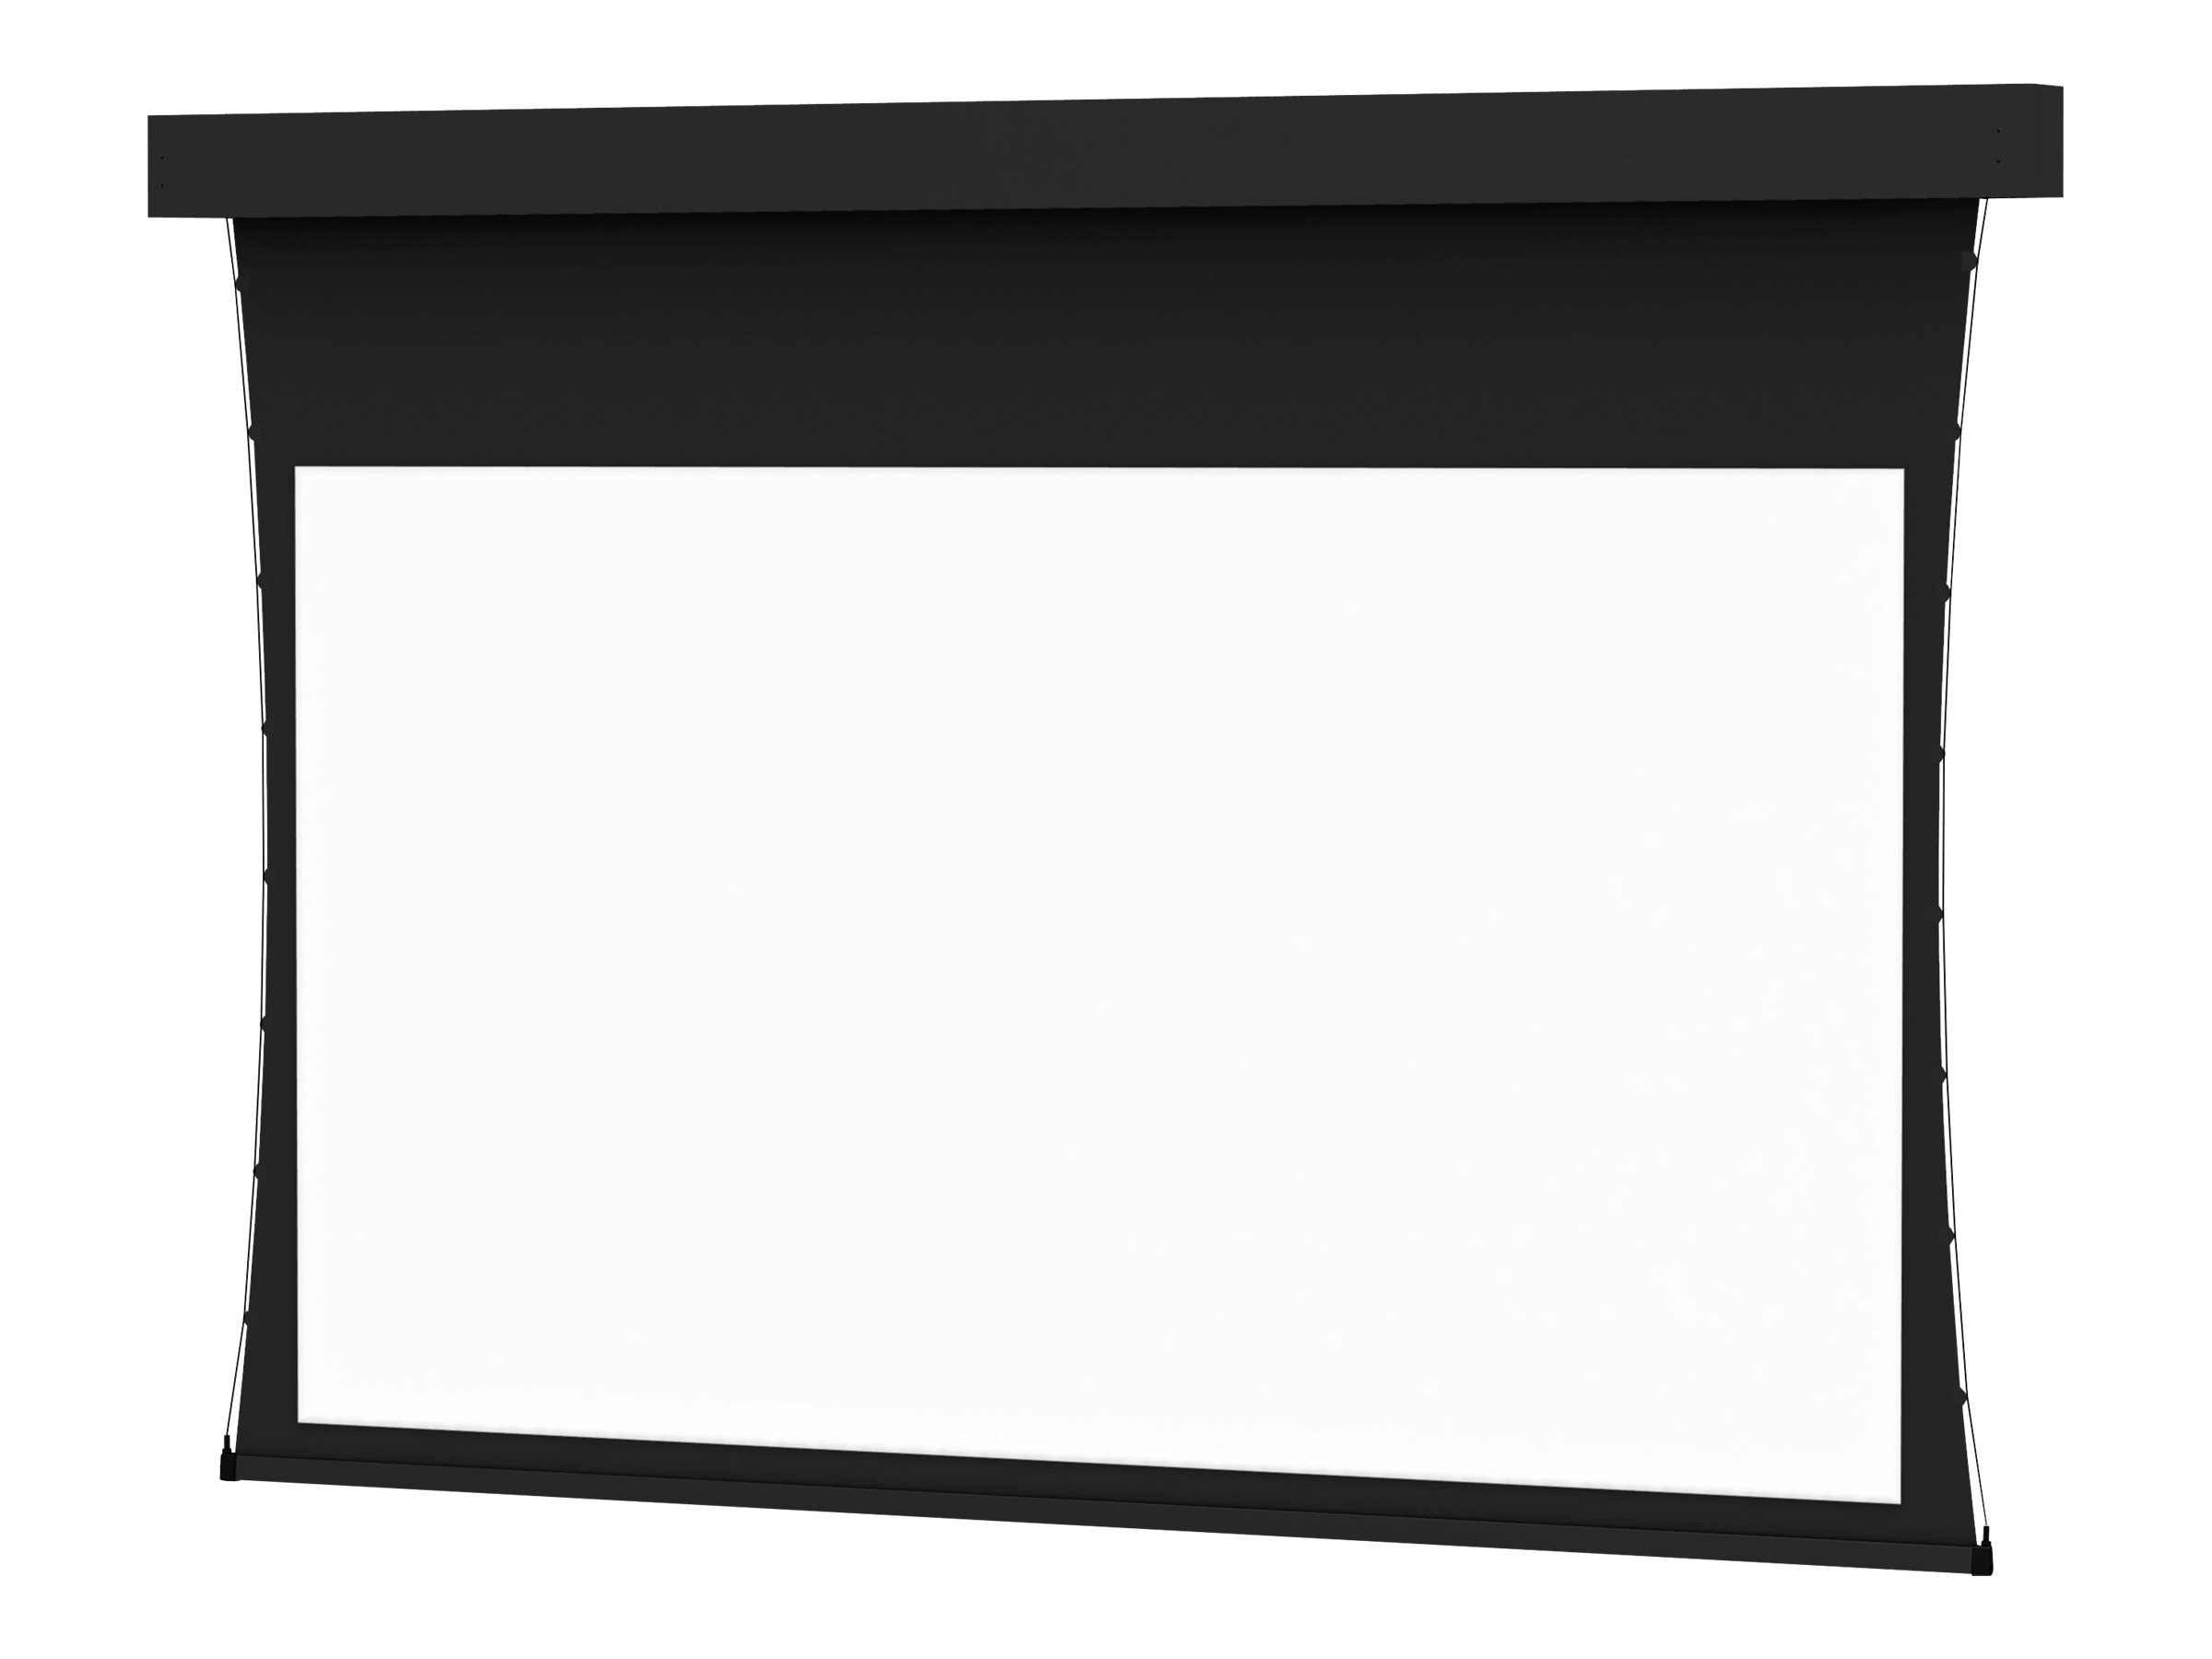 Da-Lite Tensioned Professional Electrol Projection Screen, High Contrast Da-Mat, 16:19, 298, 35278, 23099795, Projector Screens